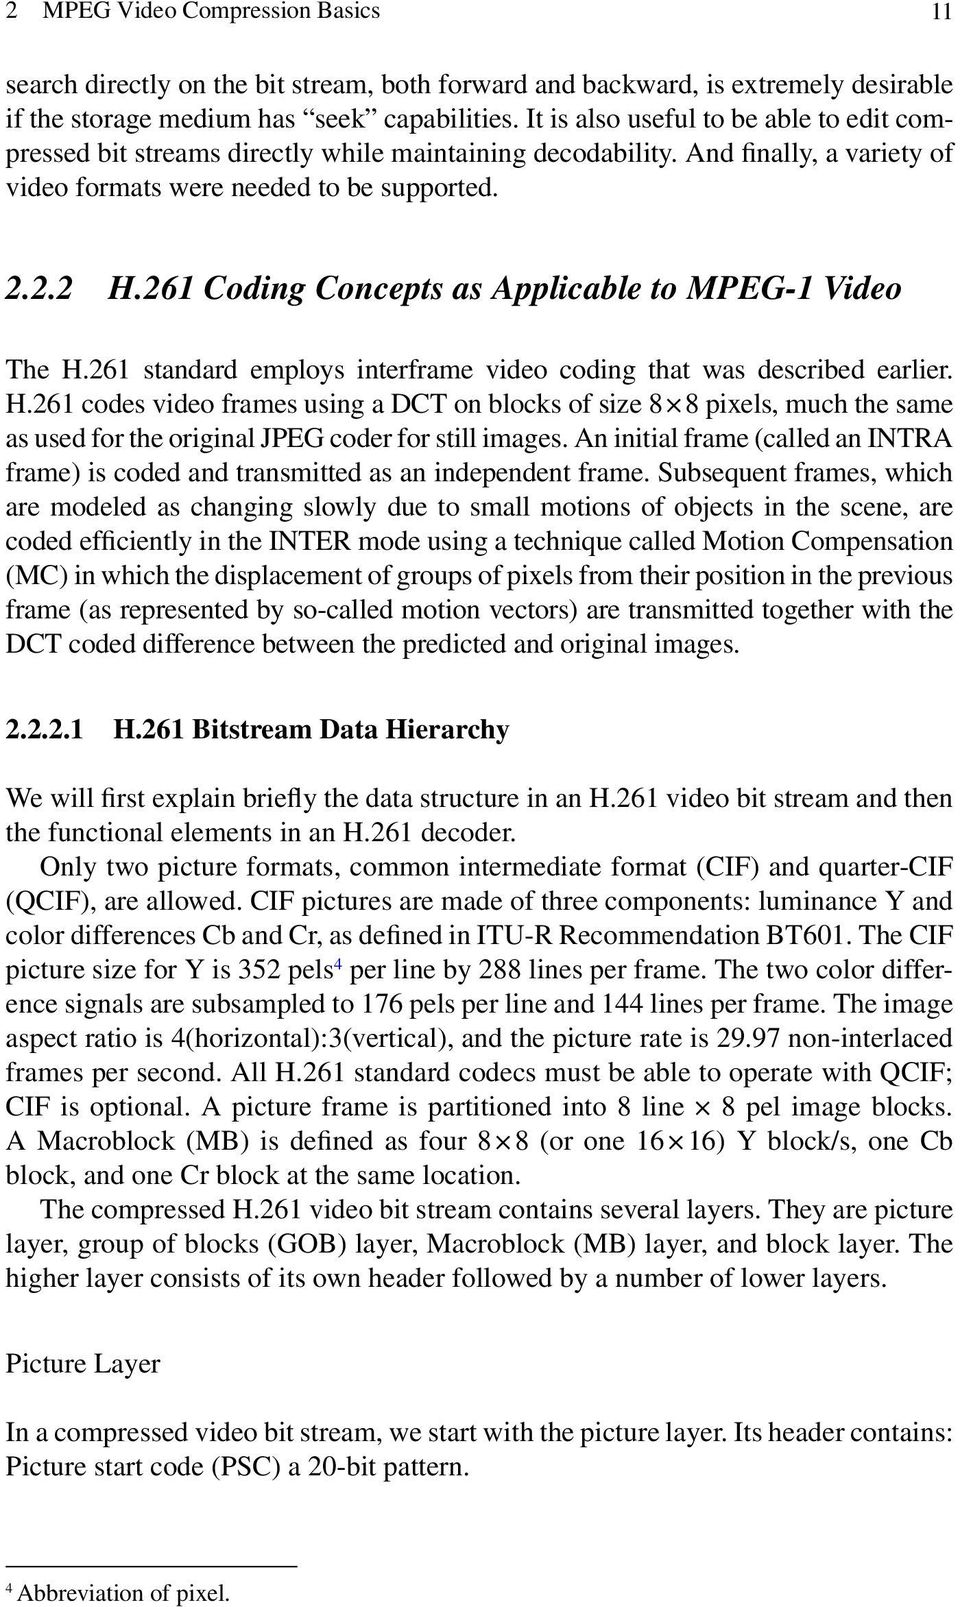 Chapter 2 Mpeg Video Compression Basics Pdf H 261 Encoder Block Diagram Coding Concepts As Applicable To 1 The H261 Standard Employs